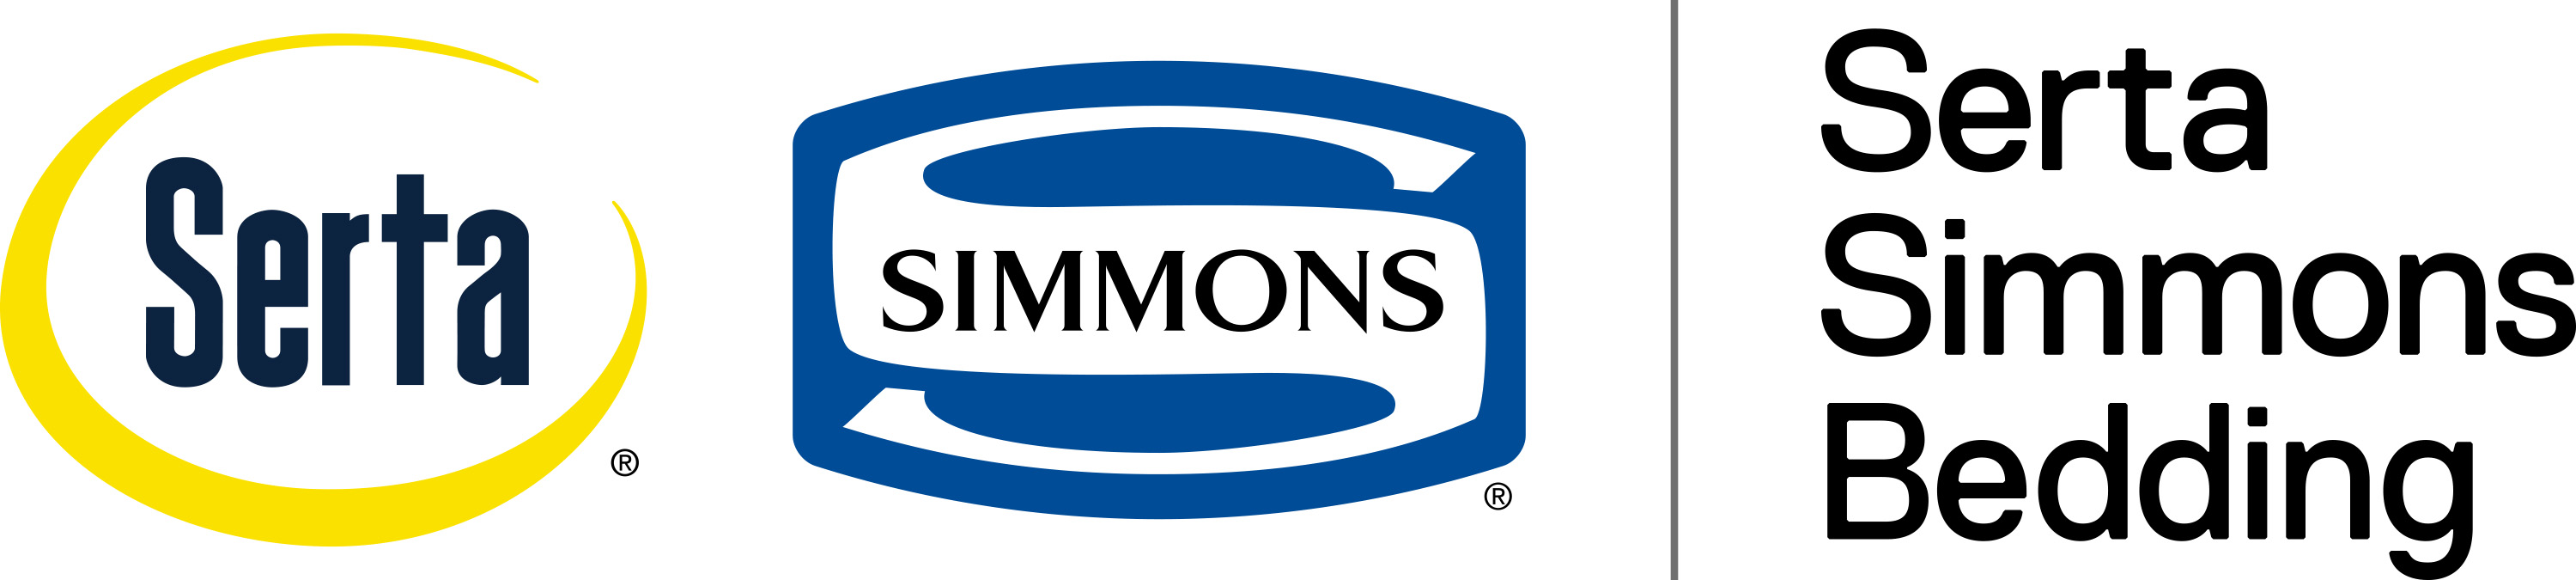 simmons bedding logo. Image Available: Http://www.marketwire.com/library/MwGo/2015/6/19/11G045404/Images/Logo_1-180810602086.jpg Simmons Bedding Logo